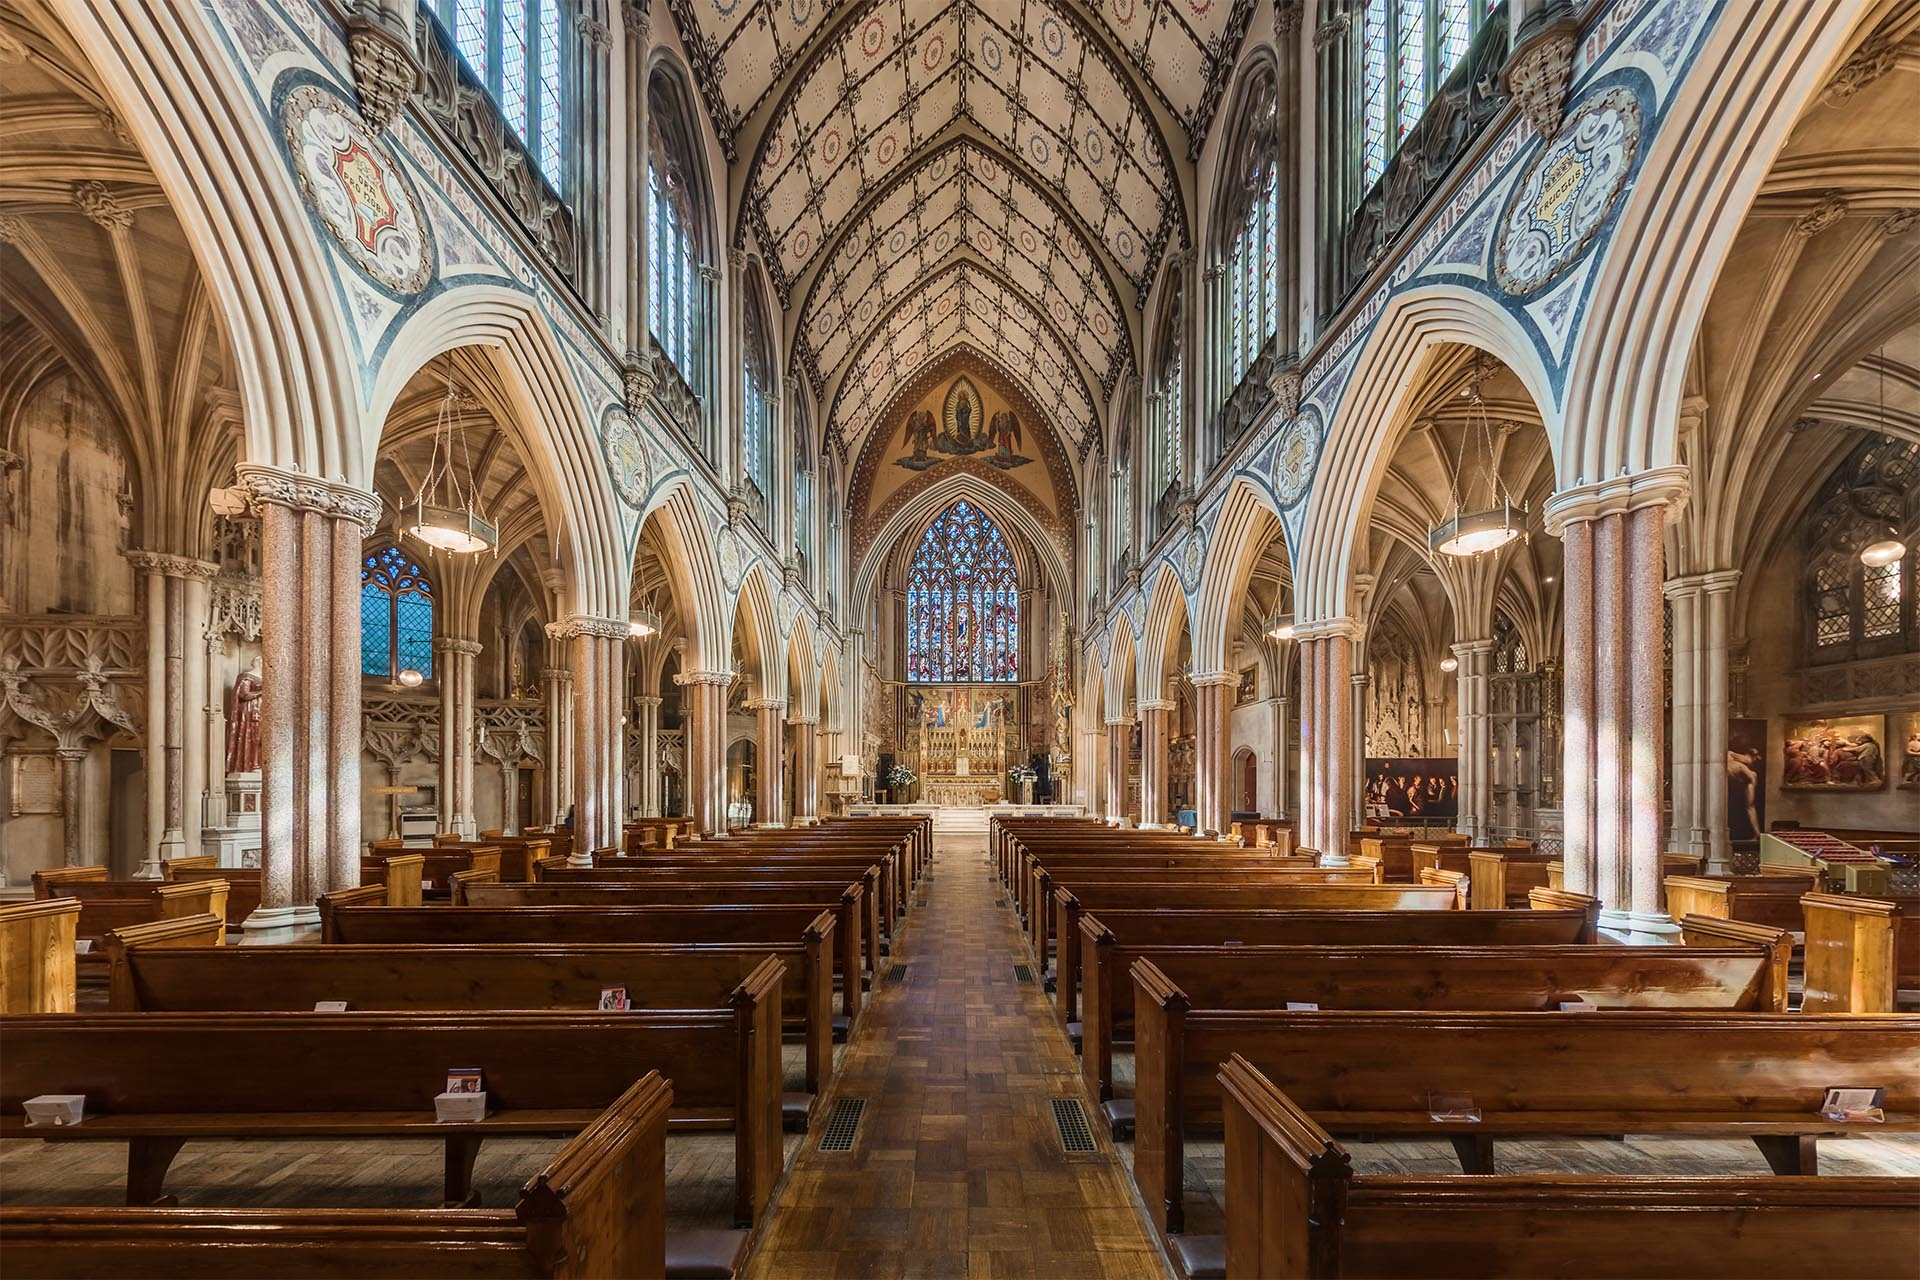 Virtual tour of Farm Street Church, Mayfair, London